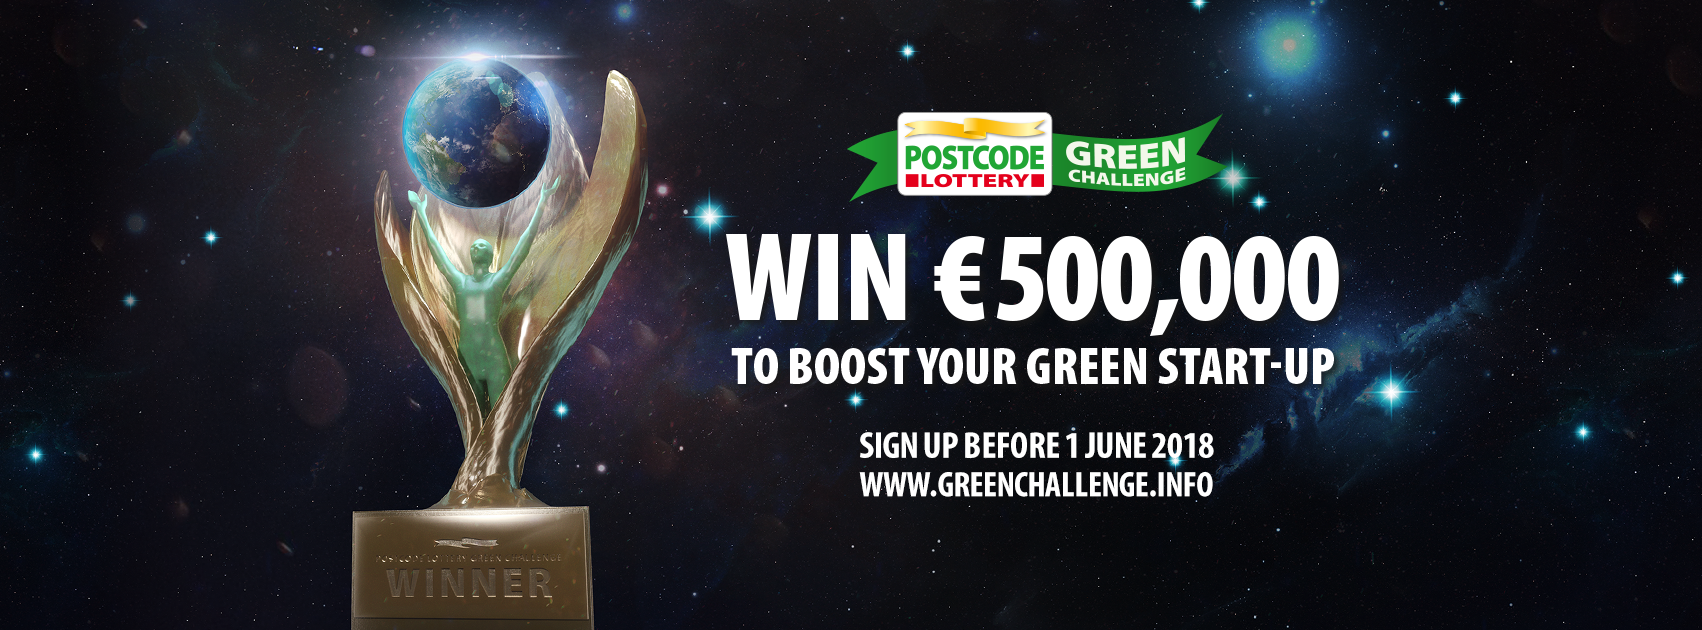 alphagamma Postcode Lottery Green Challenge 2018 opportunities